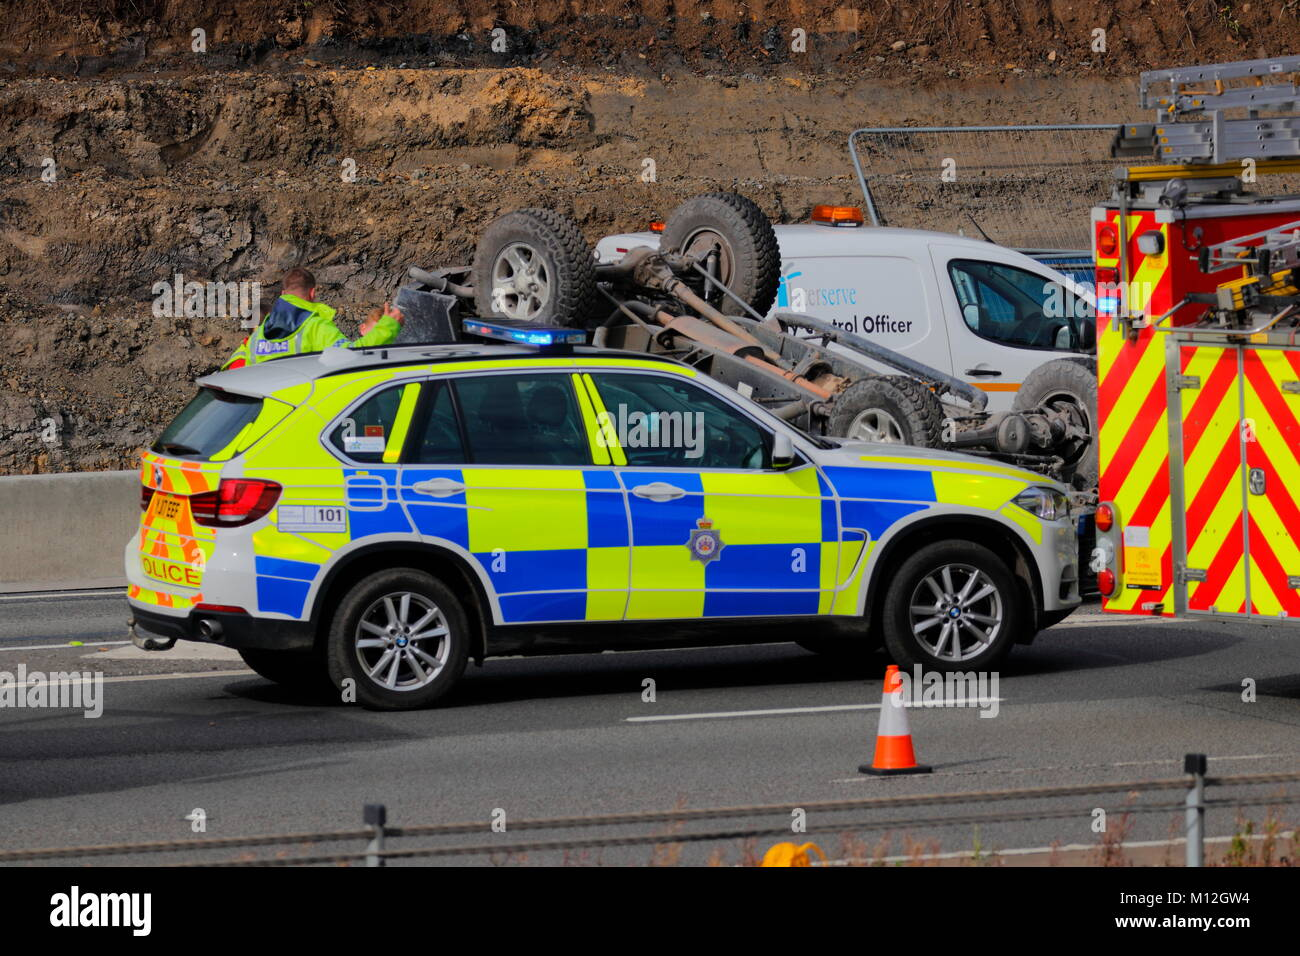 Road Traffic Accident Scene On The M1 In Leeds Stock Photo, Royalty ...